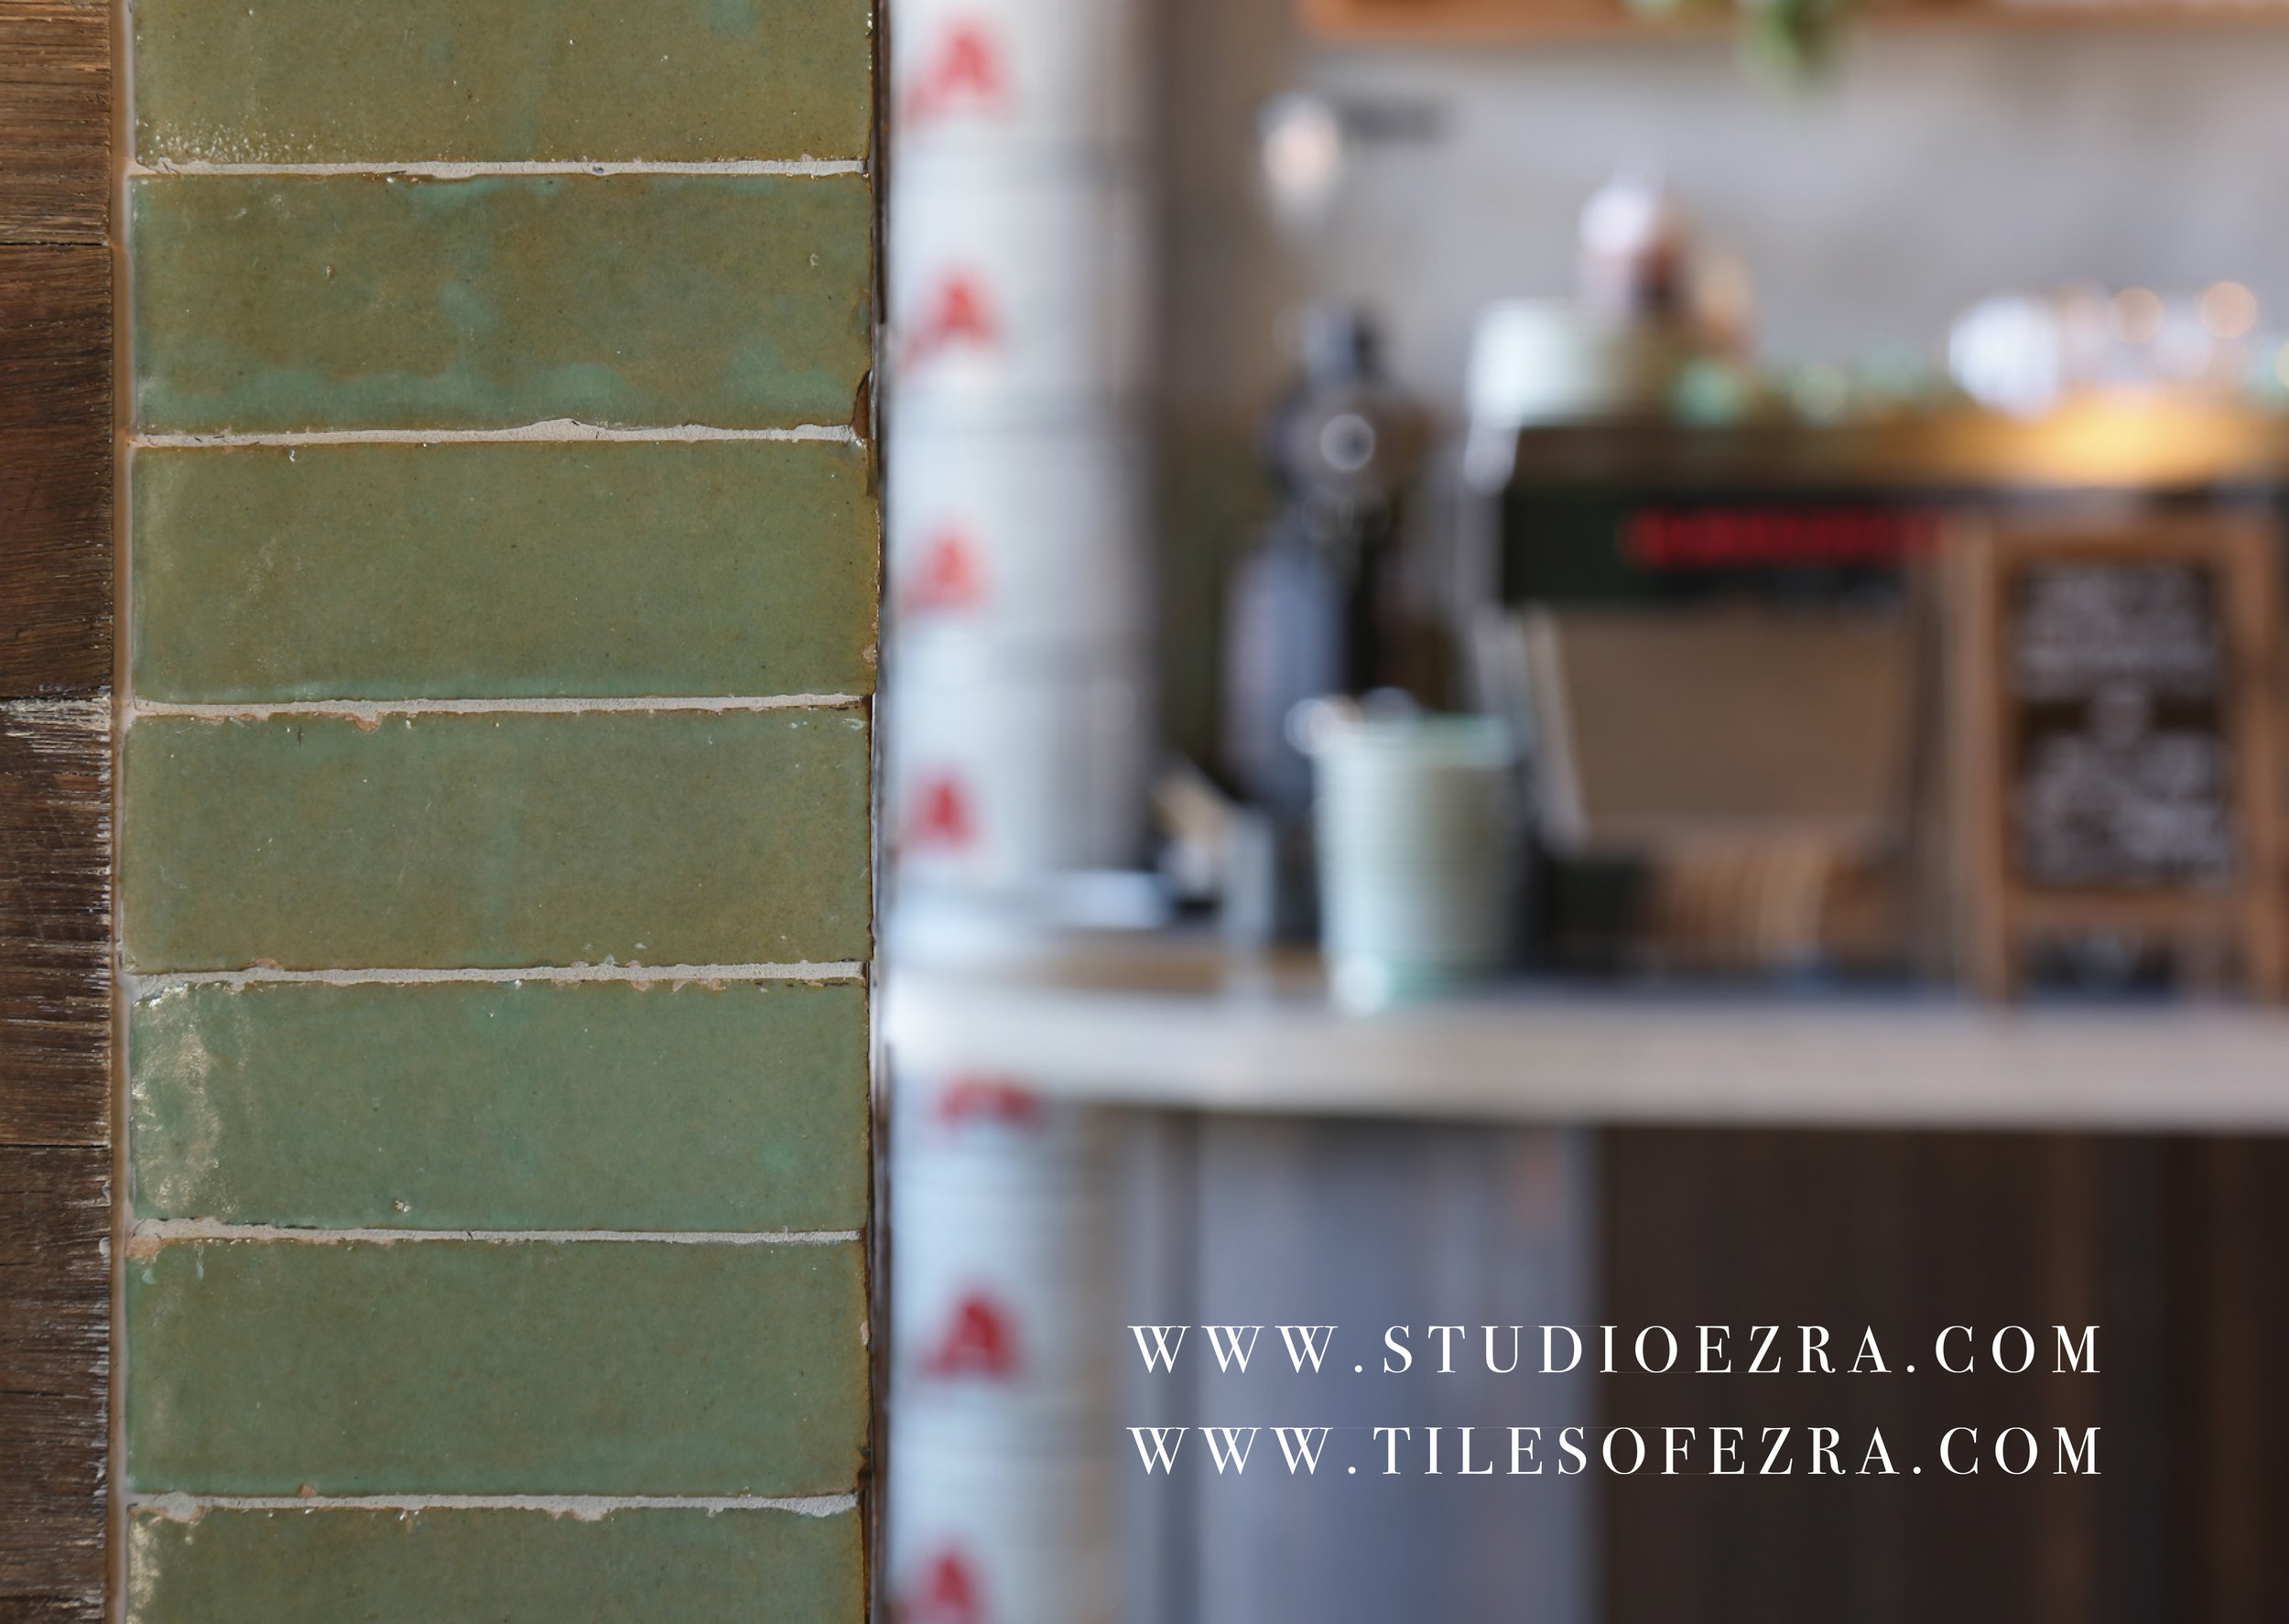 Tilesofezra FL006 Aqua The staple cafe Moroccan tiles 4.jpg